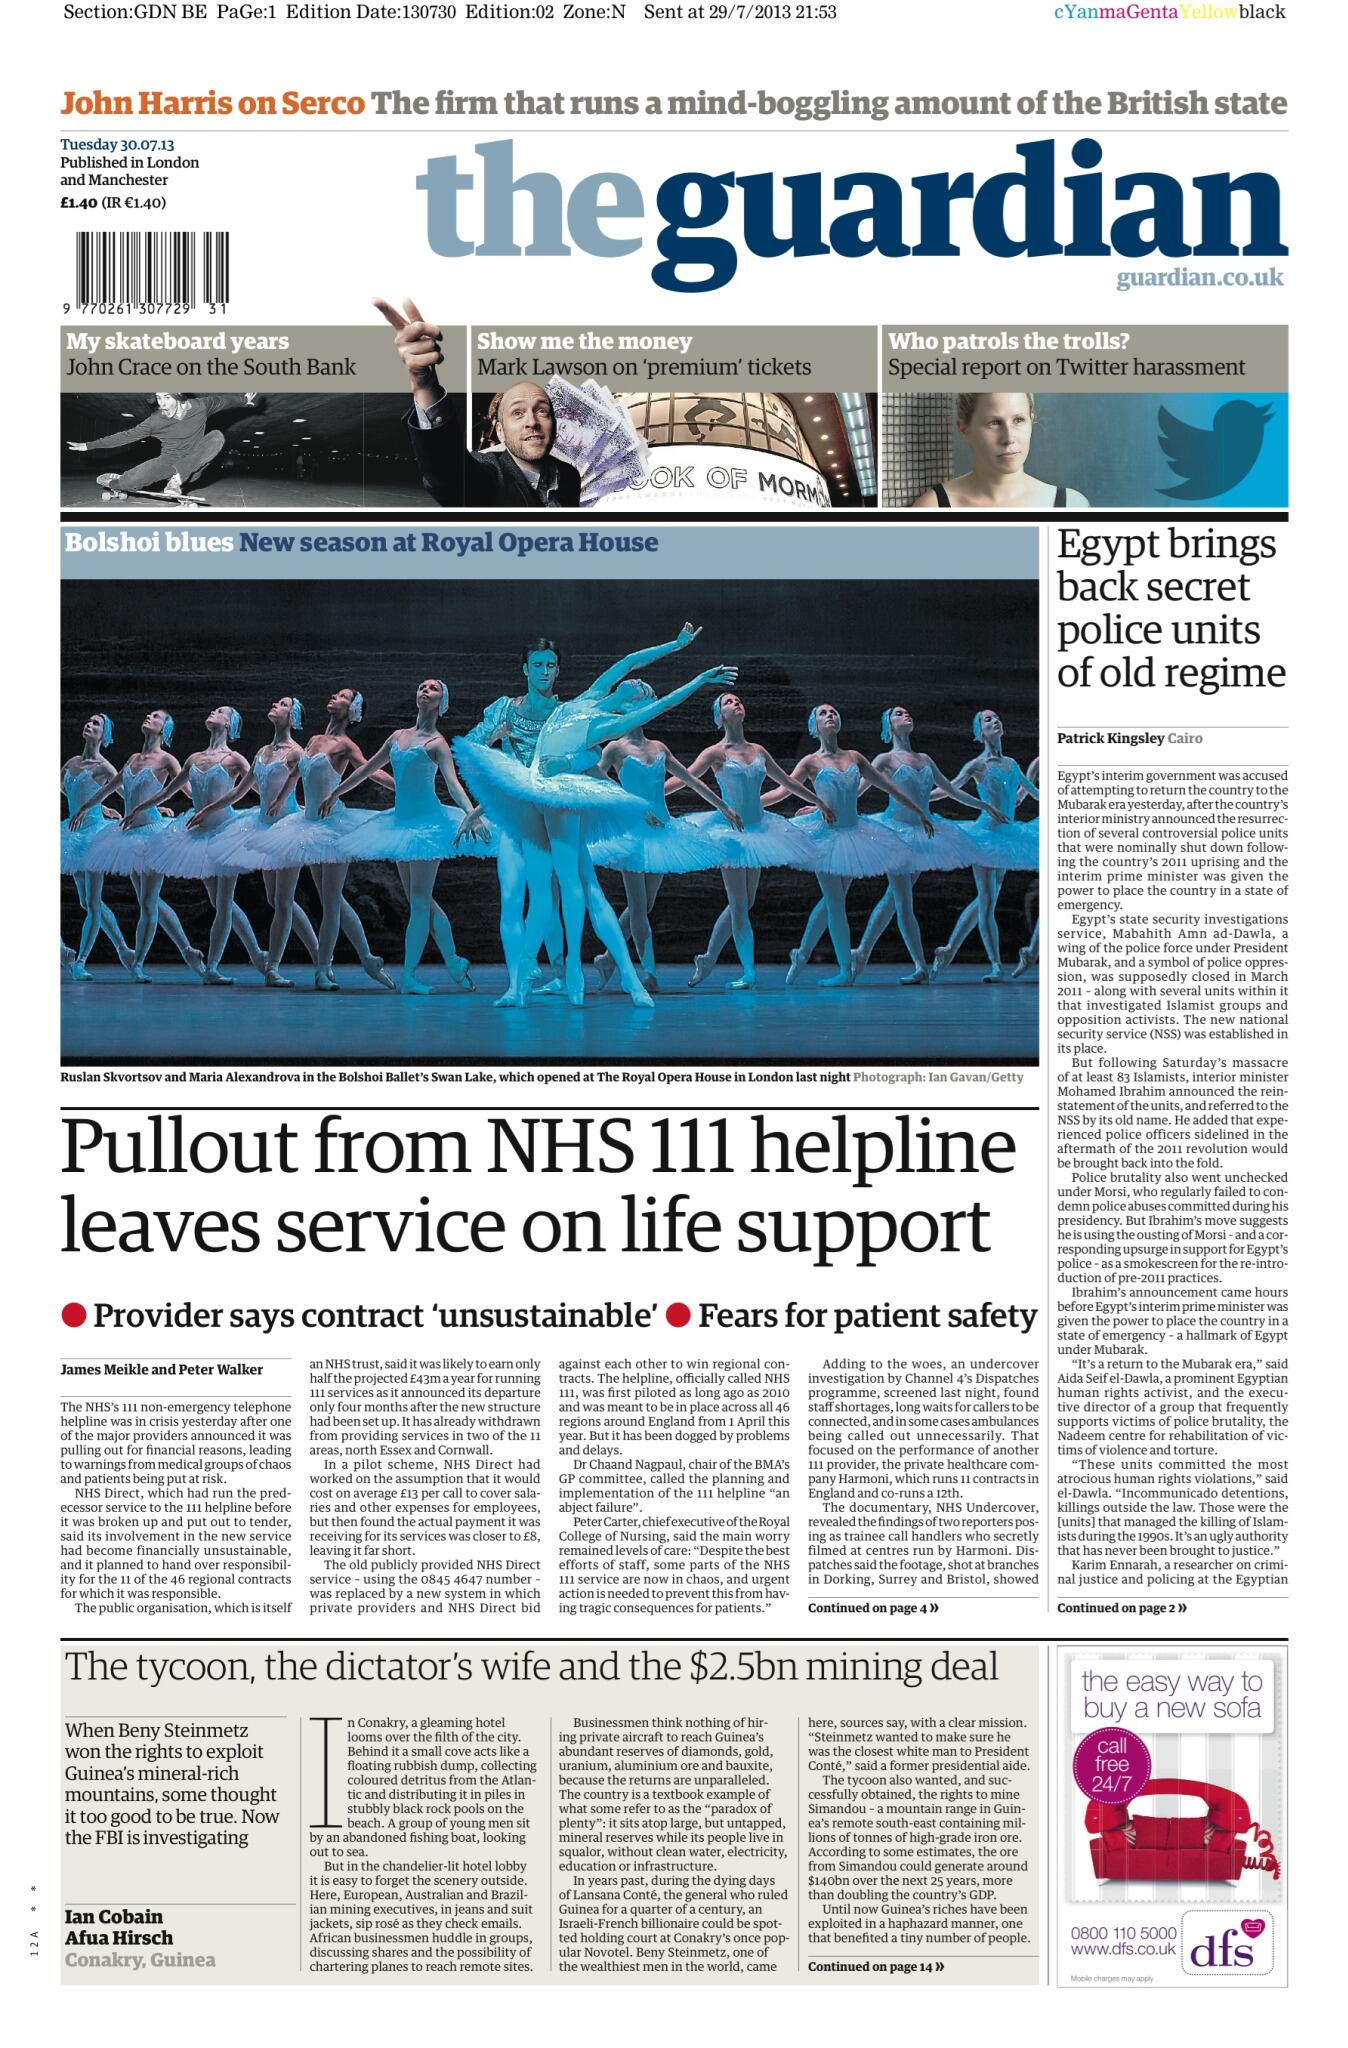 Guardian front page, Tuesday 30 July 2013: Pullout from NHS 111 helpline leaves service on life support http://t.co/muQy0SwUvt